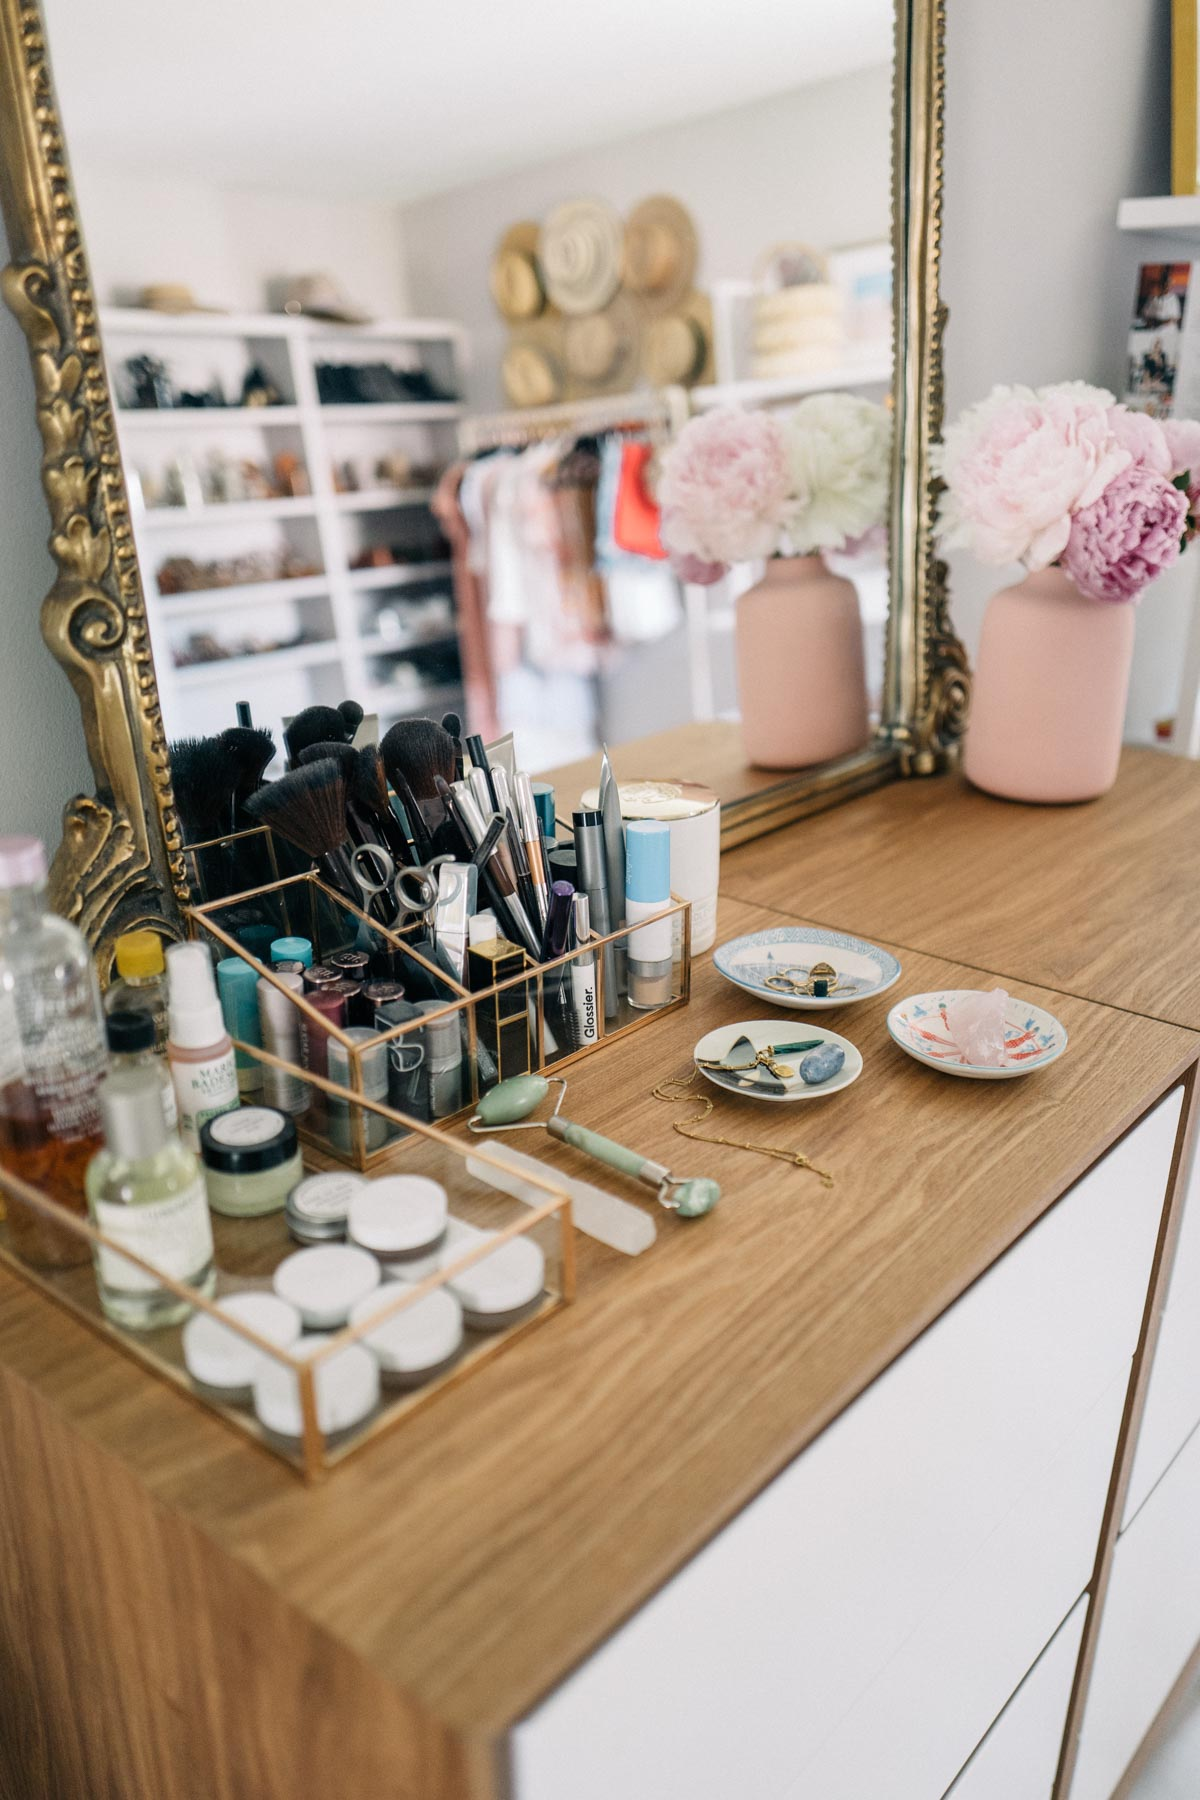 Jess Ann Kirby uses her vanity space to display makeup and skincare products